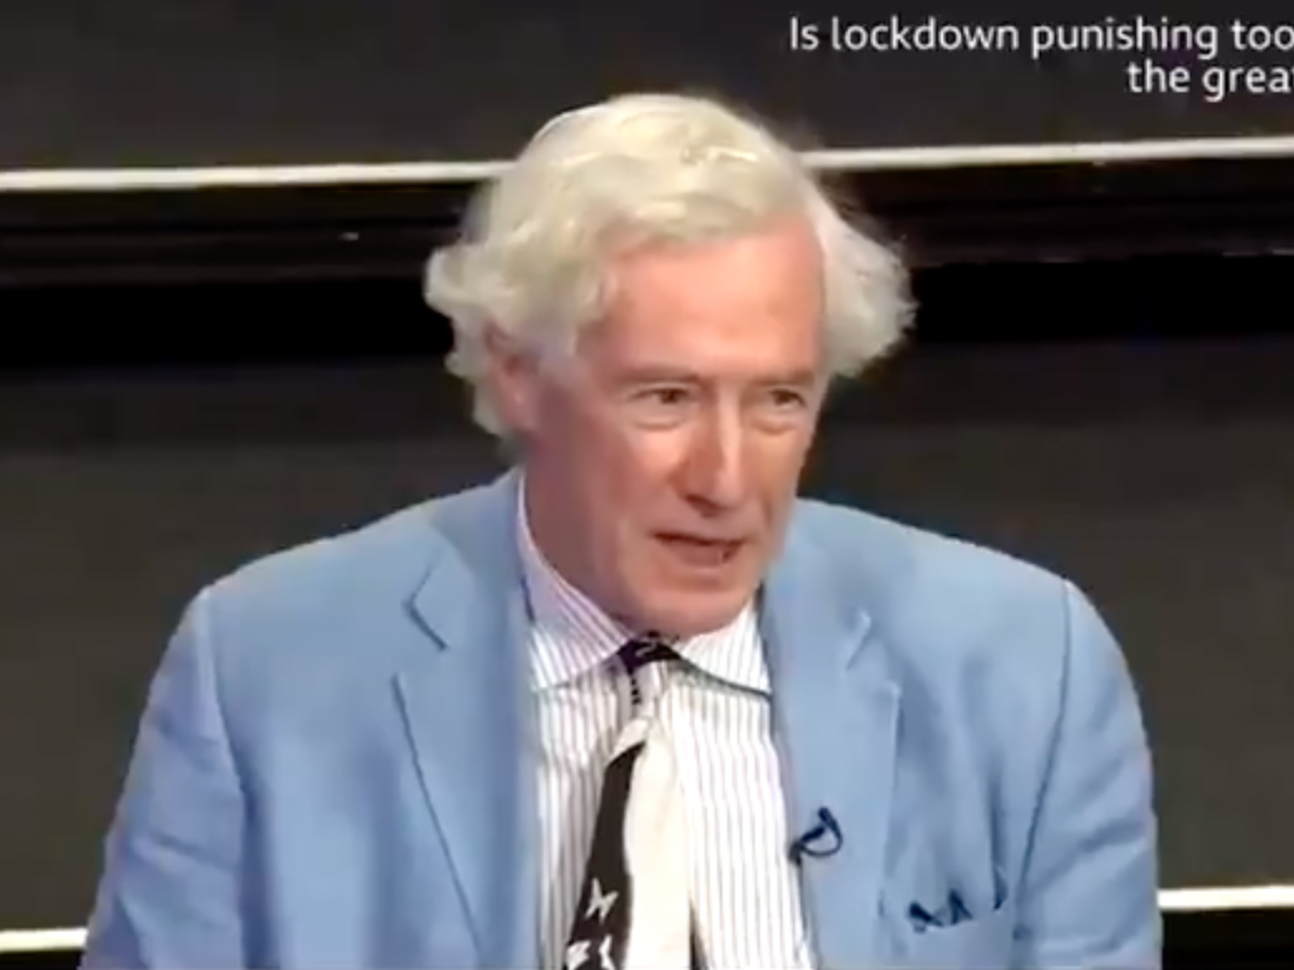 Lord Sumption tells stage 4 cancer patient her life is 'less valuable'